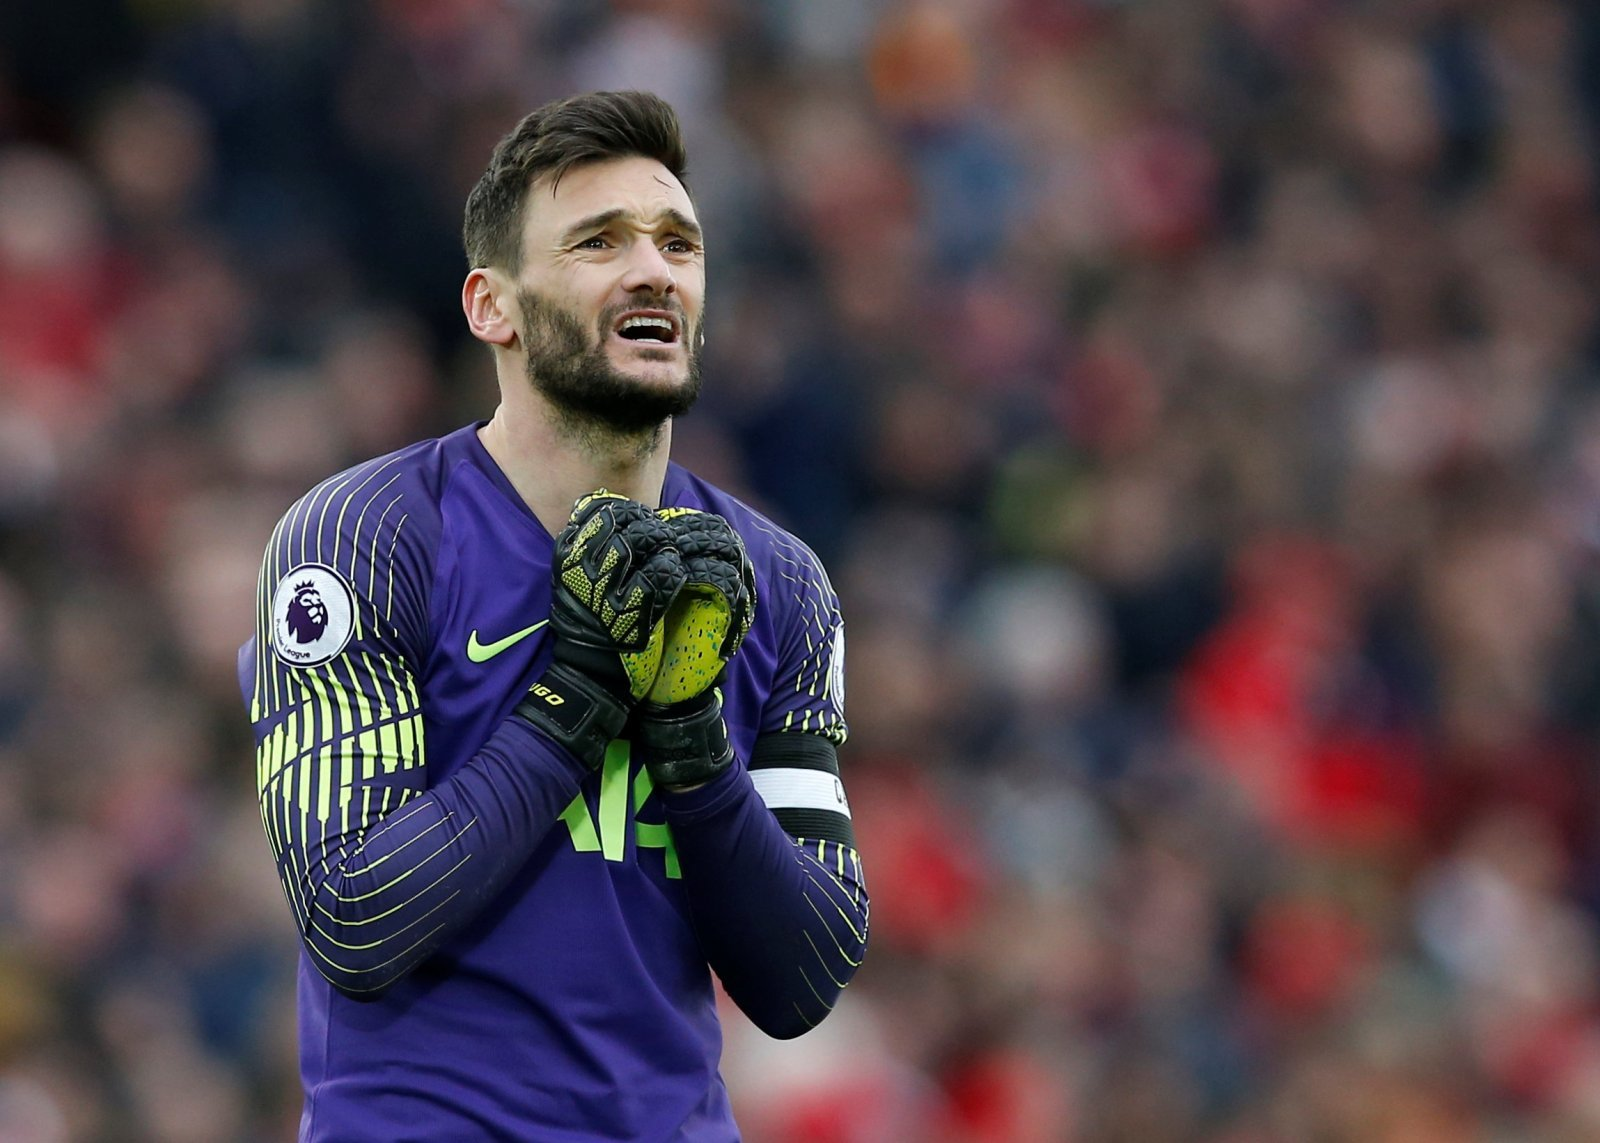 Tottenham fans on Twitter urge Lloris to avoid catastrophic blunder